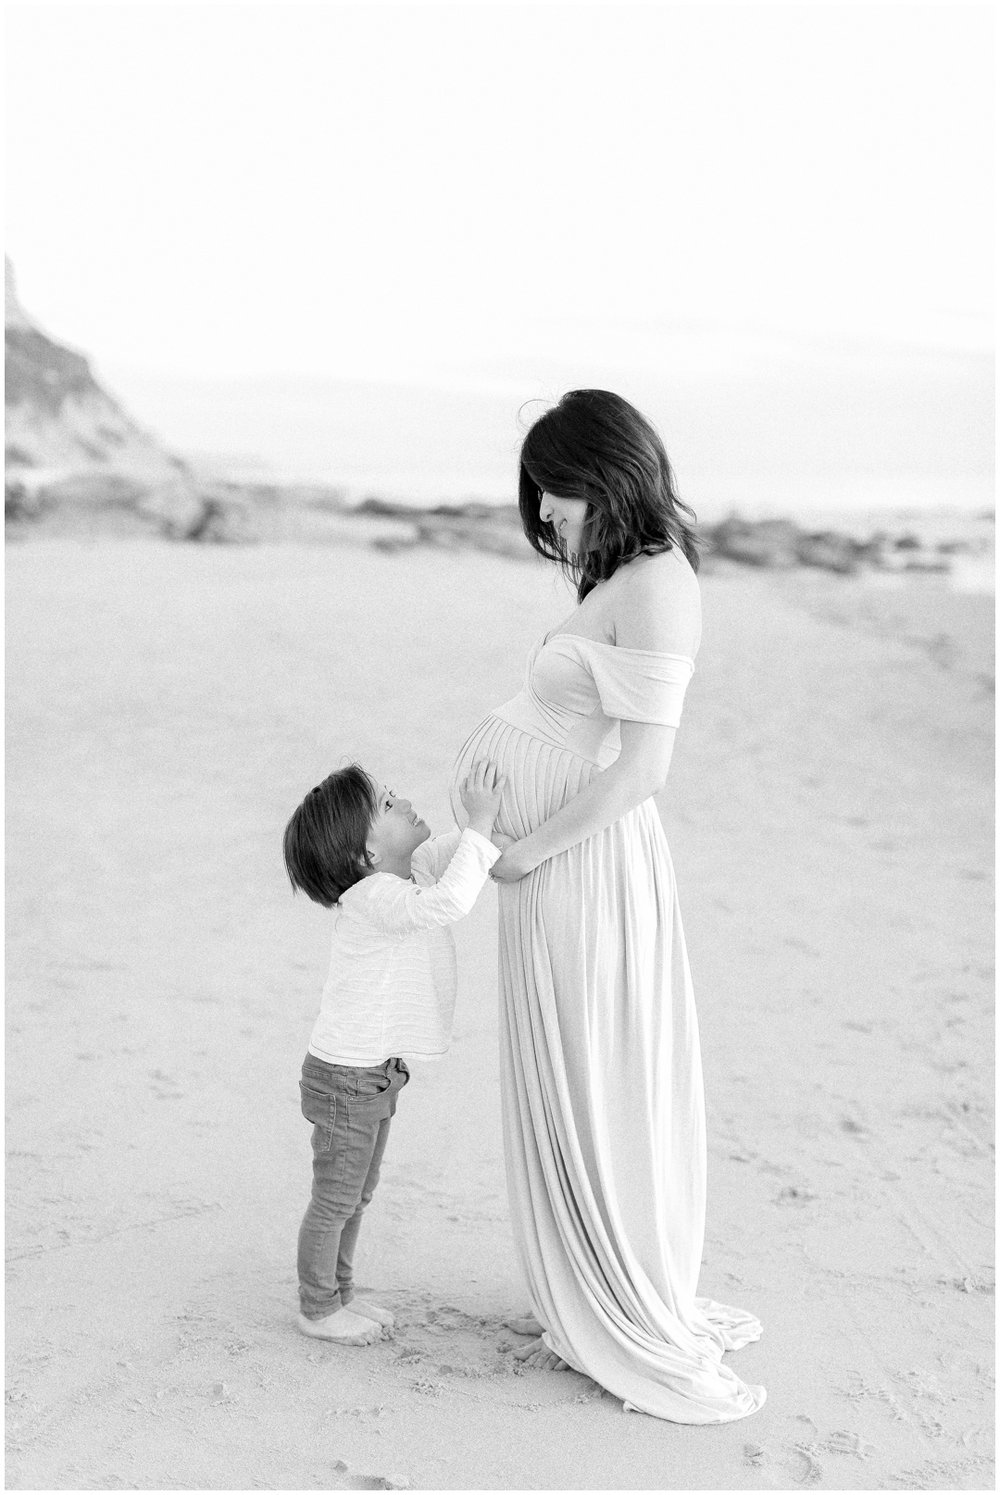 Newport_Beach_Newborn_Photographer_Newport_Beach_Maternity_Photographer_Orange_County_Family_Photographer_Cori_Kleckner_Photography_Huntington_Beach_Photographer_The_Perez_Family_OC_Maternity__2968.jpg